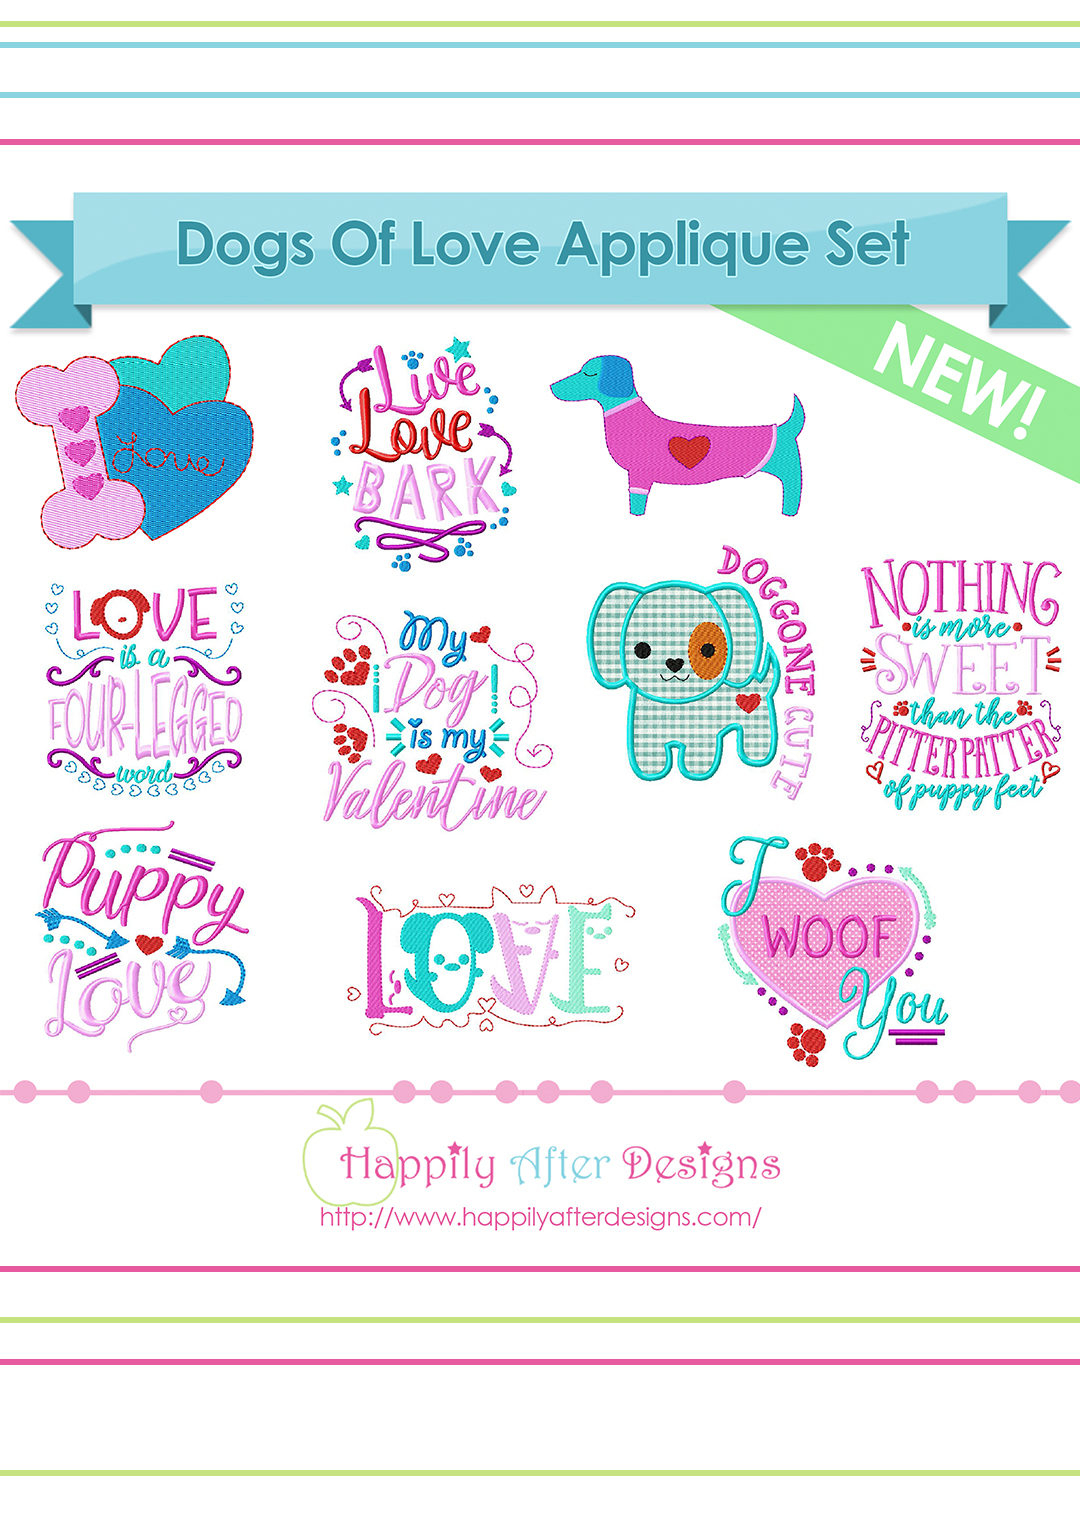 Cute Embroidery Patterns Cute Embroidery Designs Archives Happily After Designs Blog